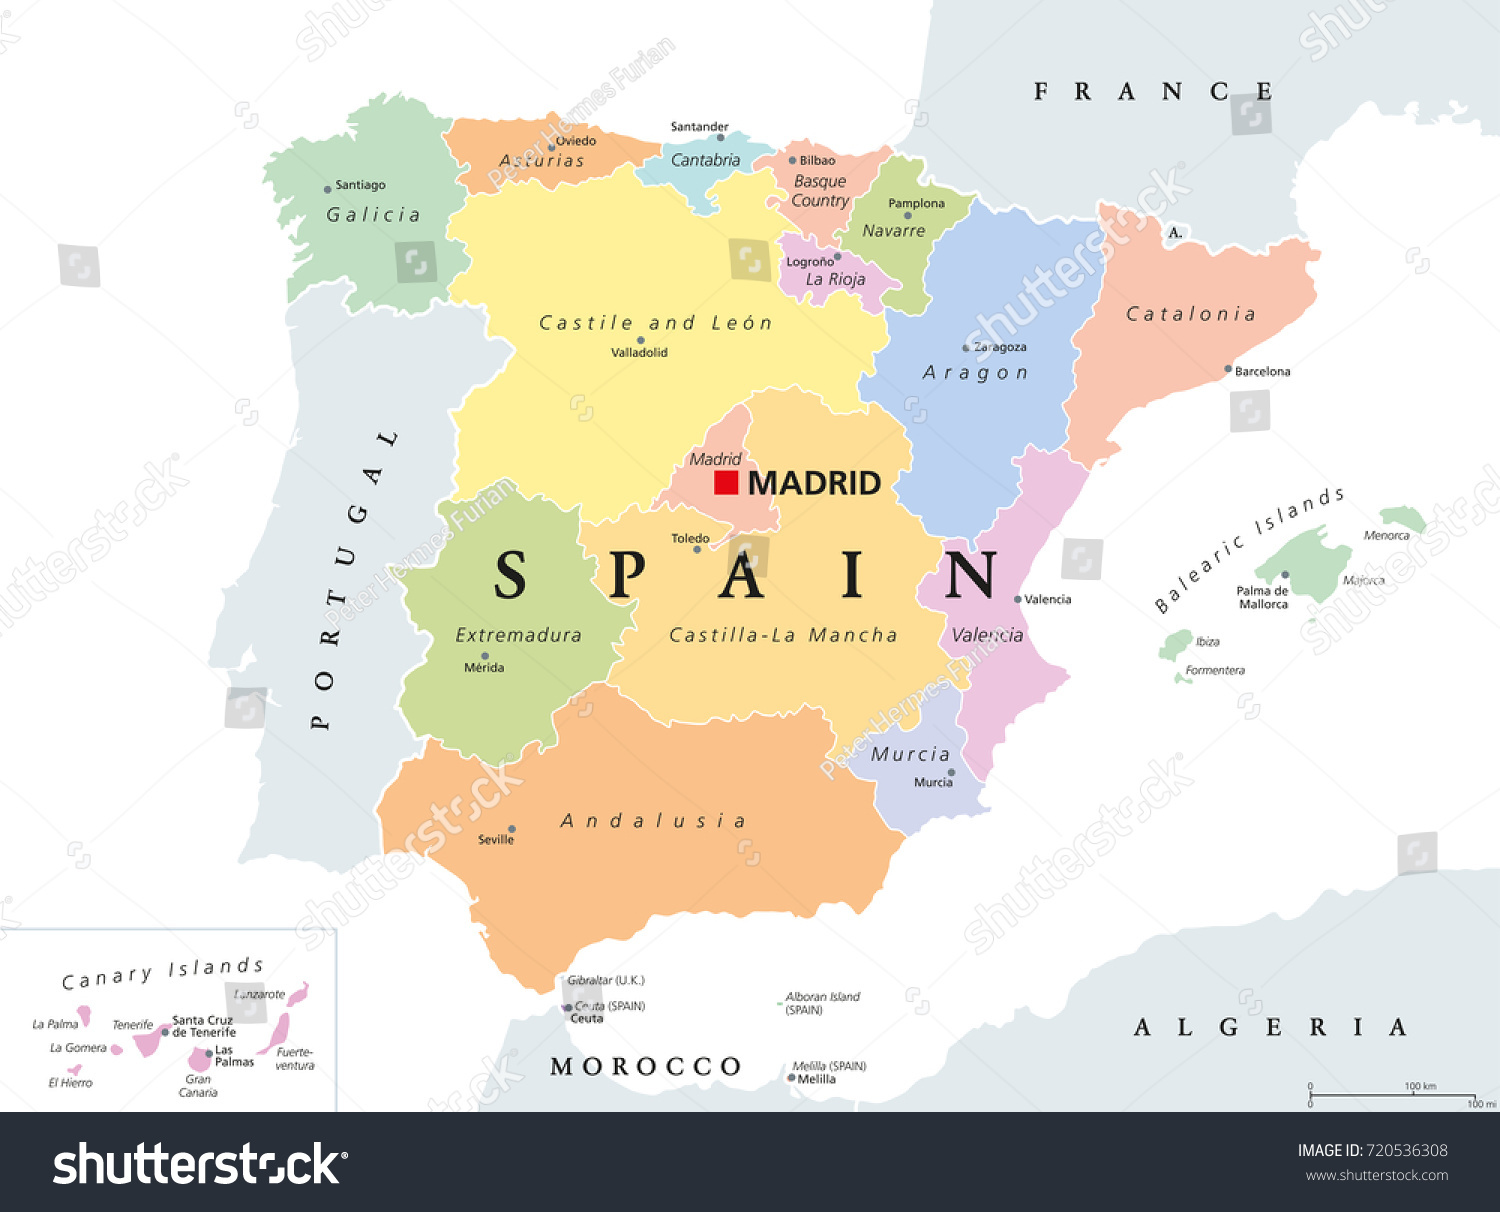 Spain Political Map Political Division Kingdom Stock Vector